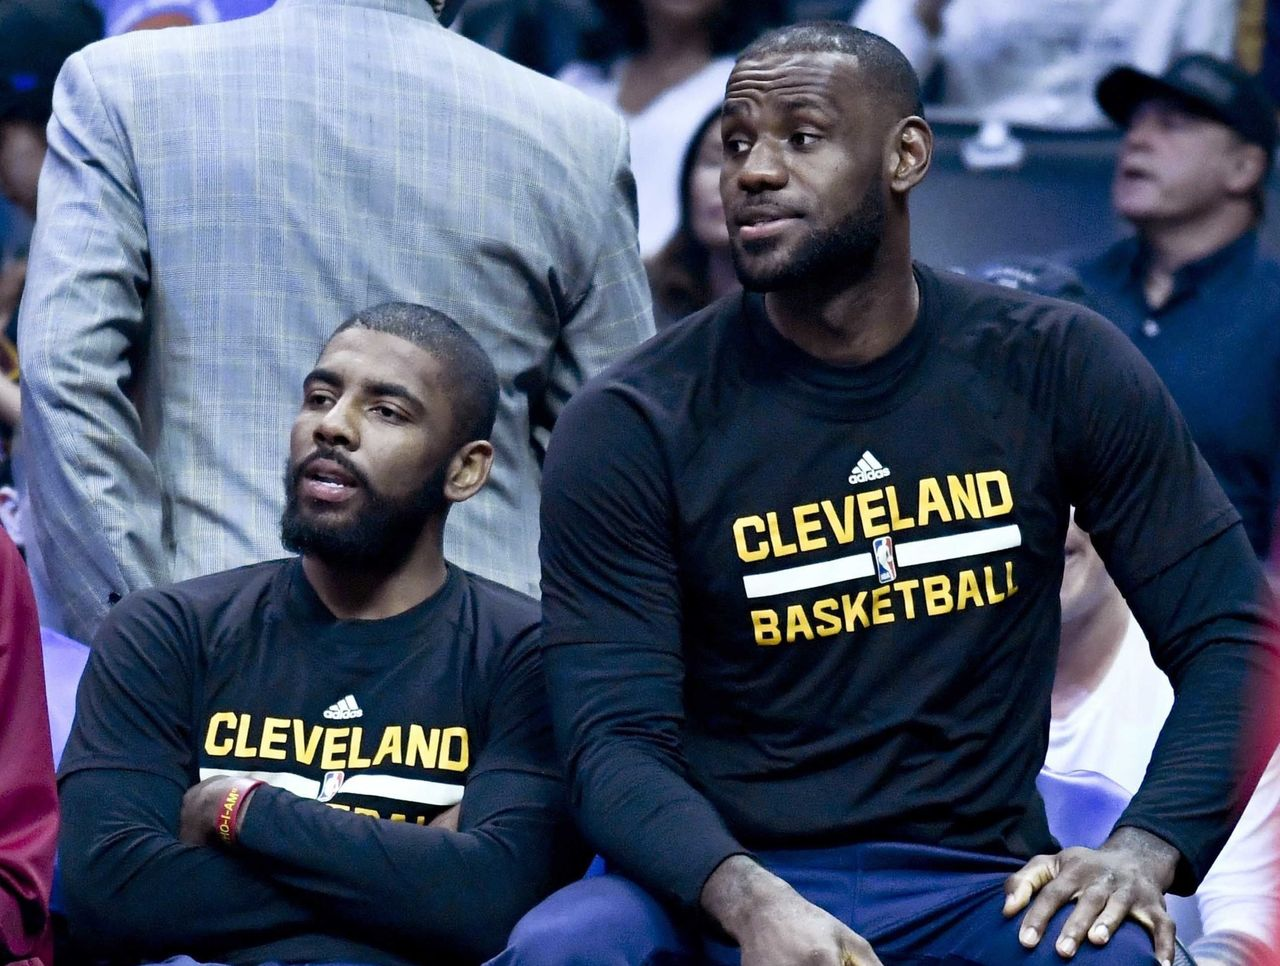 Cropped 2017 03 19t010911z 234959825 nocid rtrmadp 3 nba cleveland cavaliers at los angeles clippers